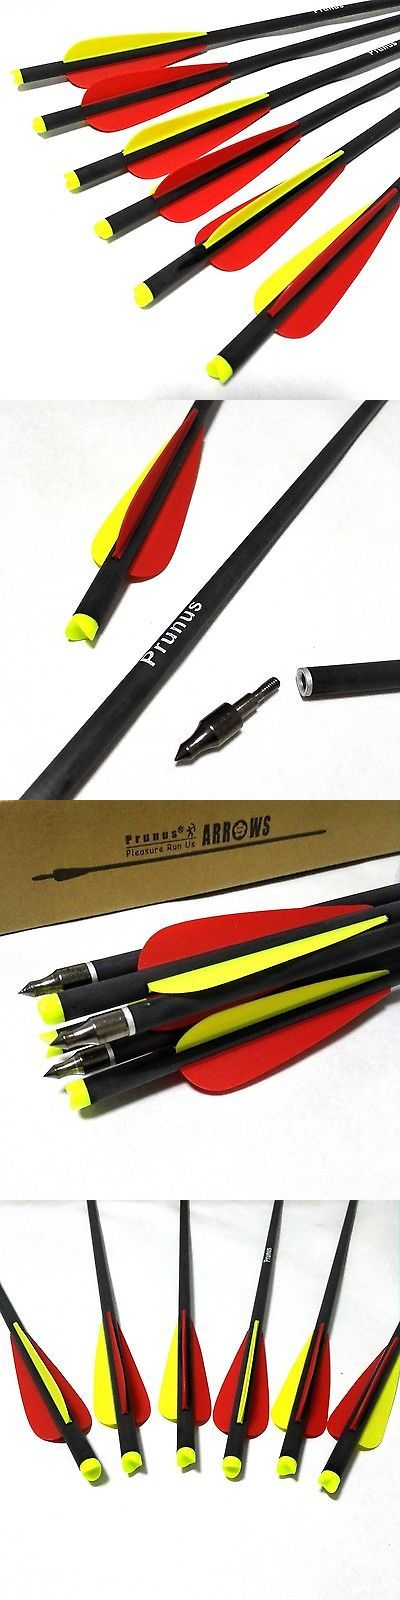 Crossbow Bolts 181309: Prunus Archery 20-Inch Carbon Crossbow Arrows Bolts With Change... Free Shipping BUY IT NOW ONLY: $35.62